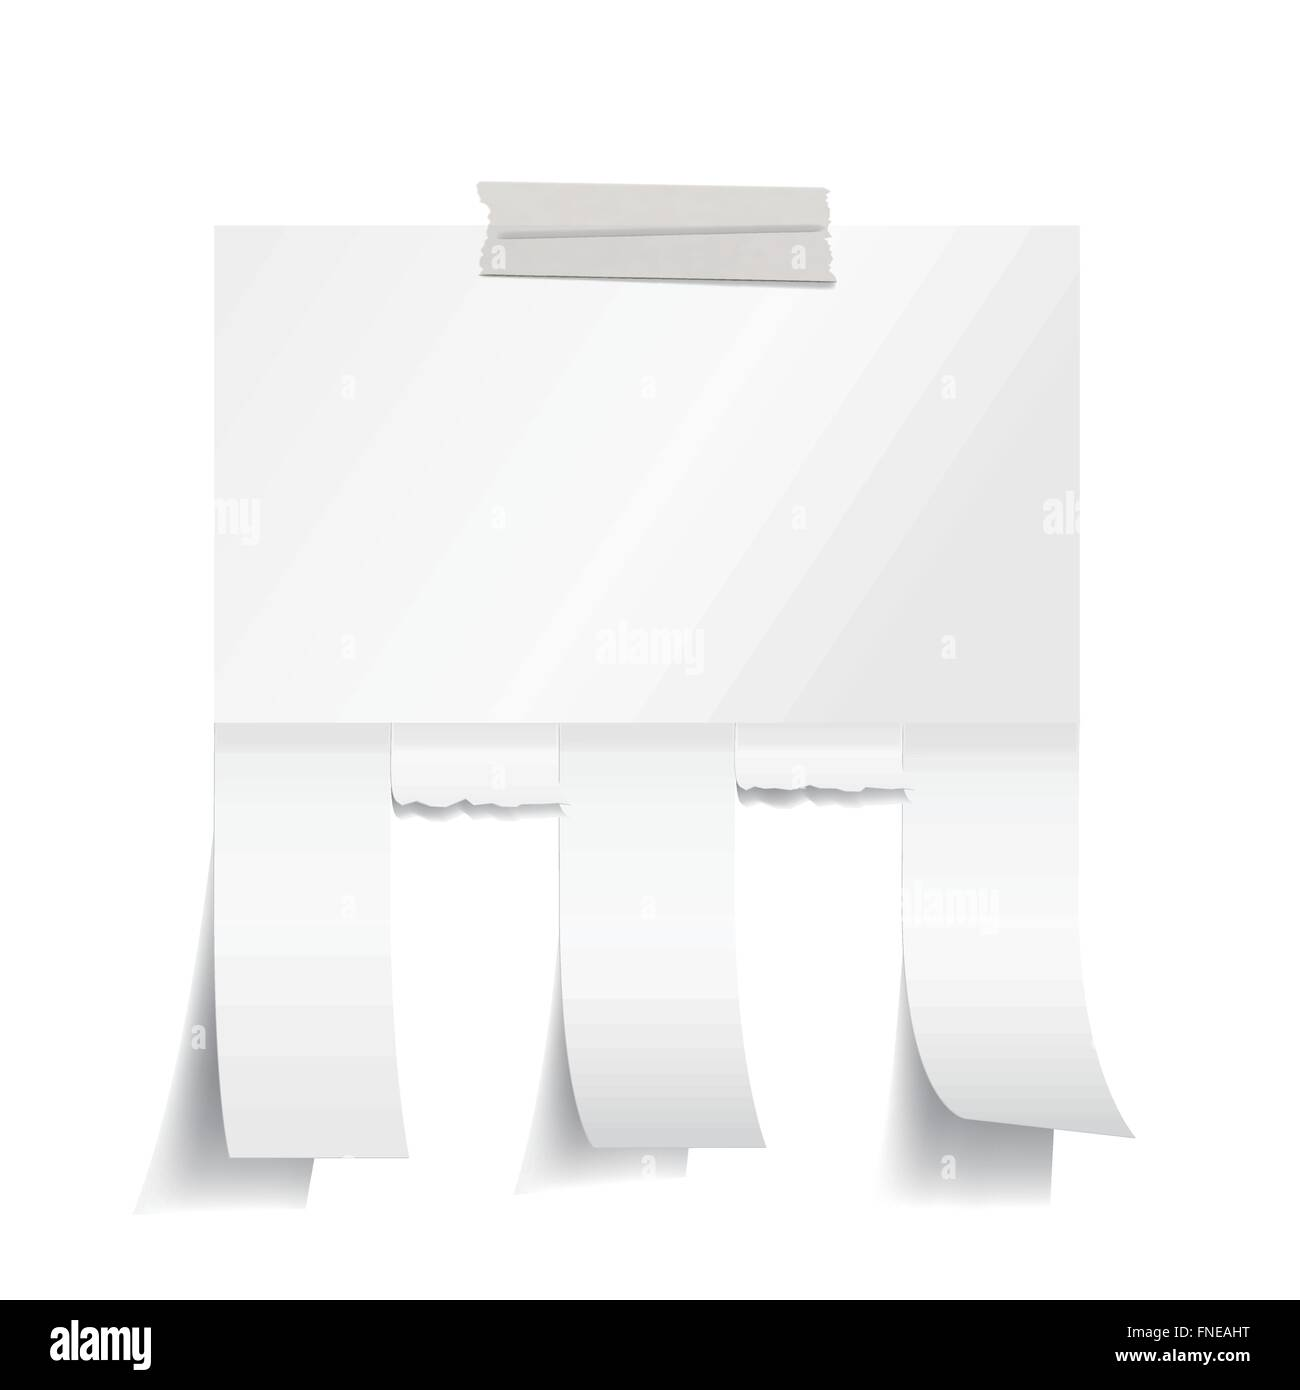 Blank white paper with tear off tabs - Stock Image